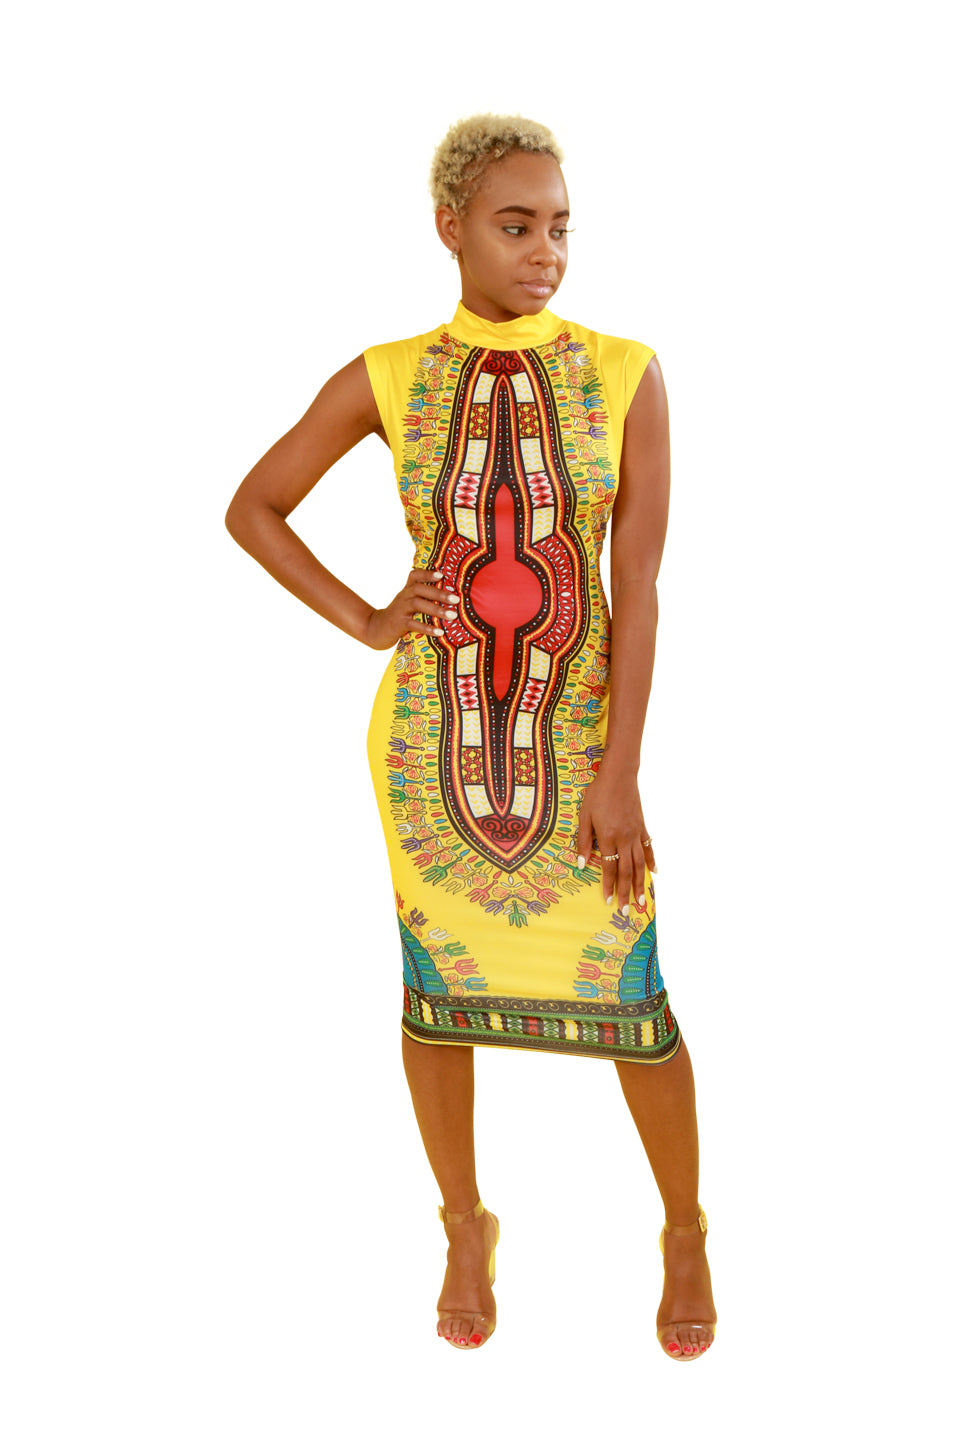 Yellow Fitted Dashiki Dress - Dress Nolafrique African Print Dress